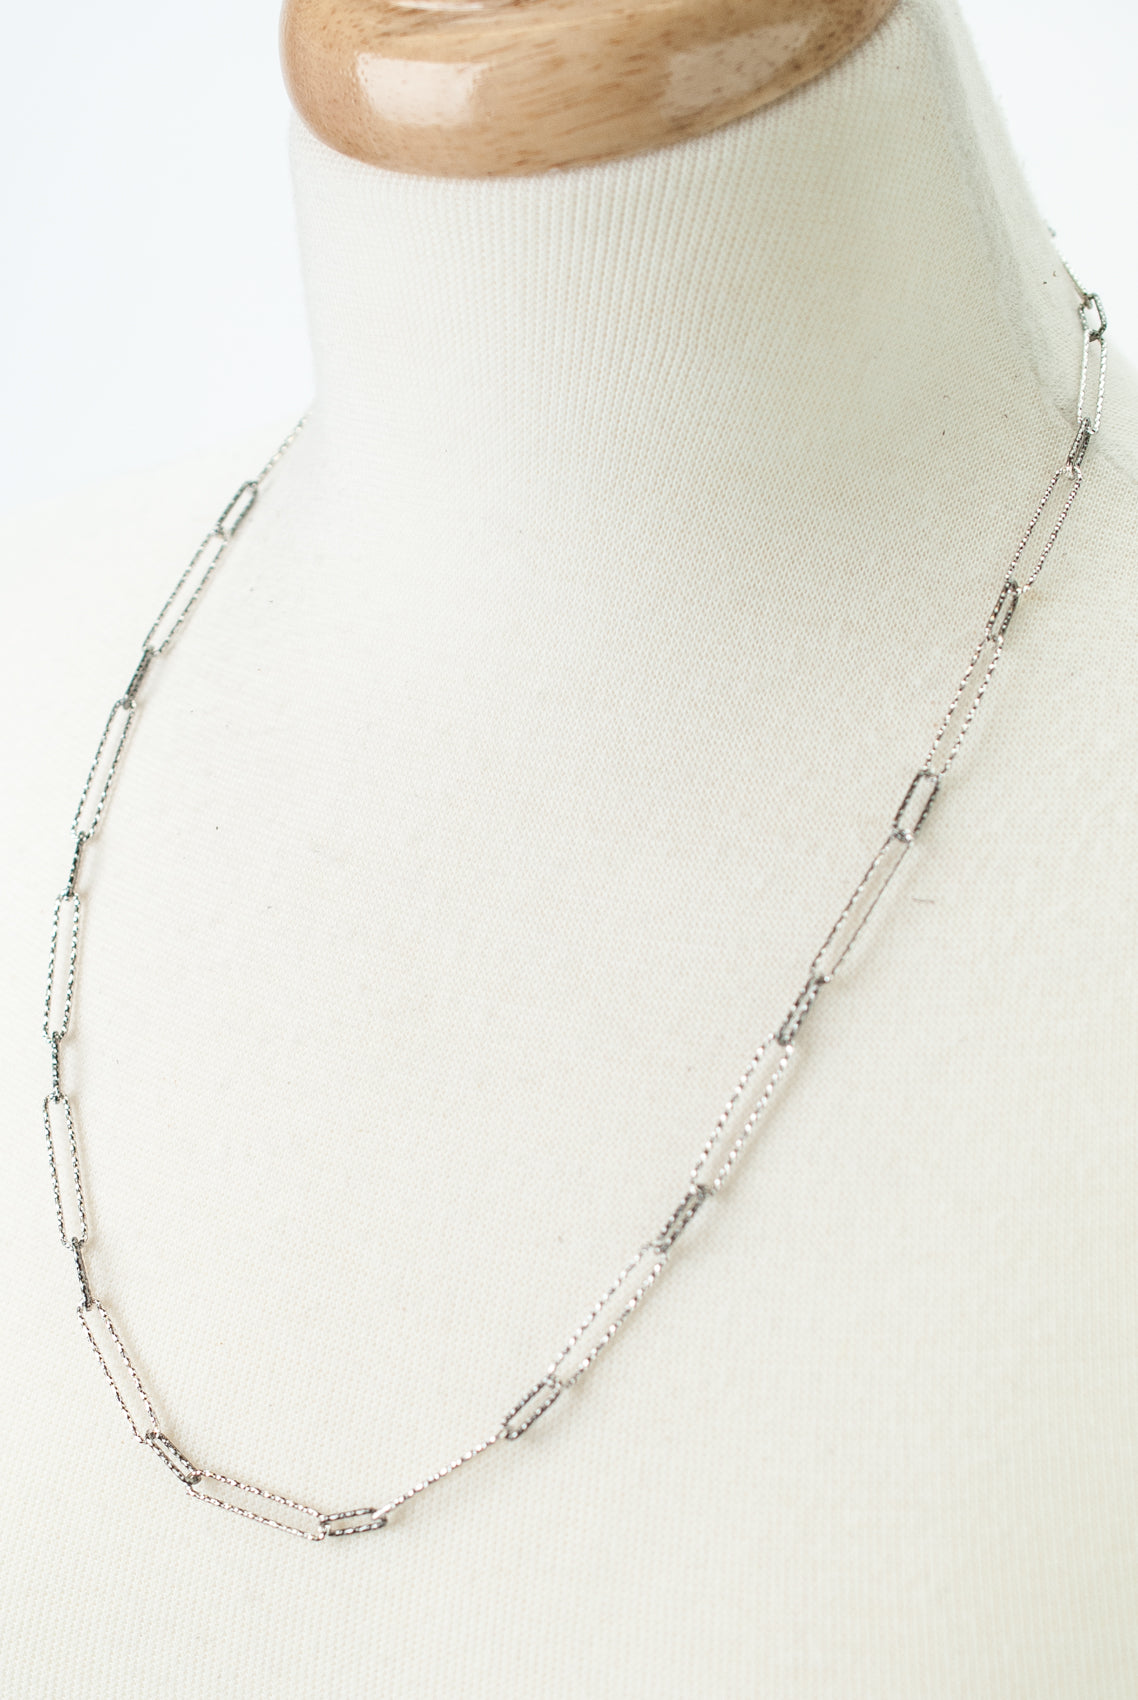 "*Victory 24"" Adjustable Chain Necklace"